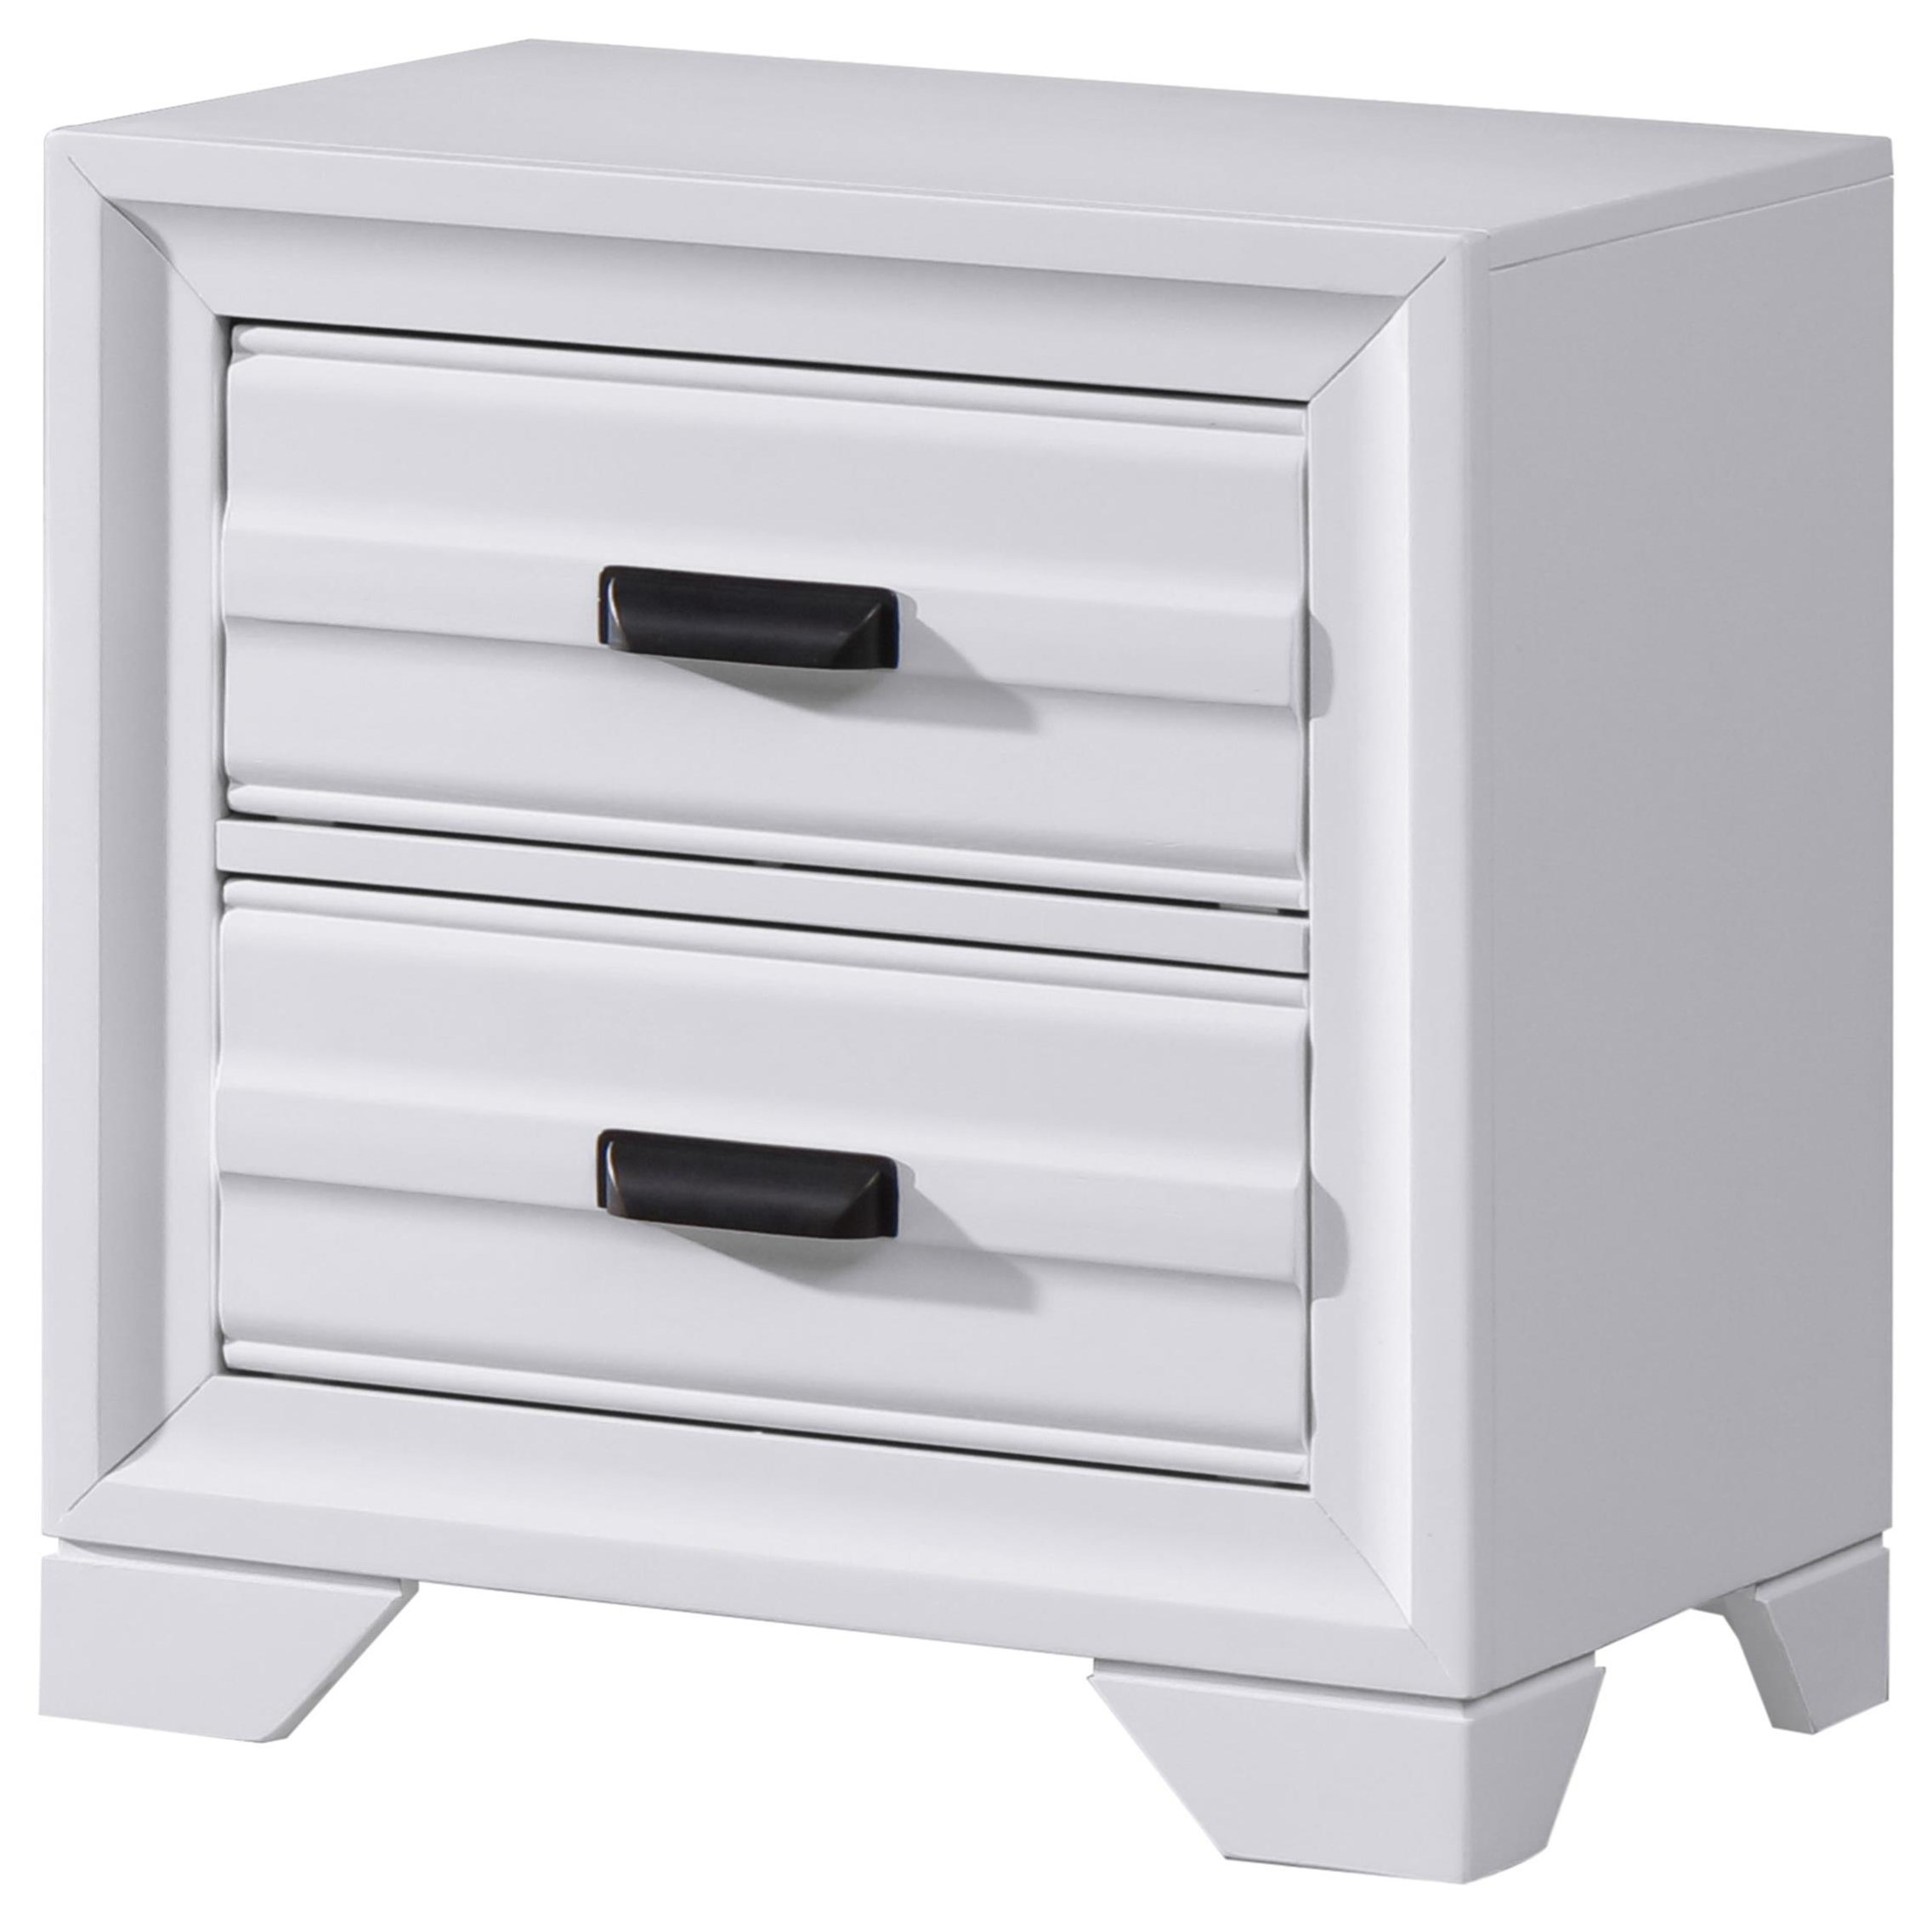 5236W Nightstand by Lifestyle at Beck's Furniture